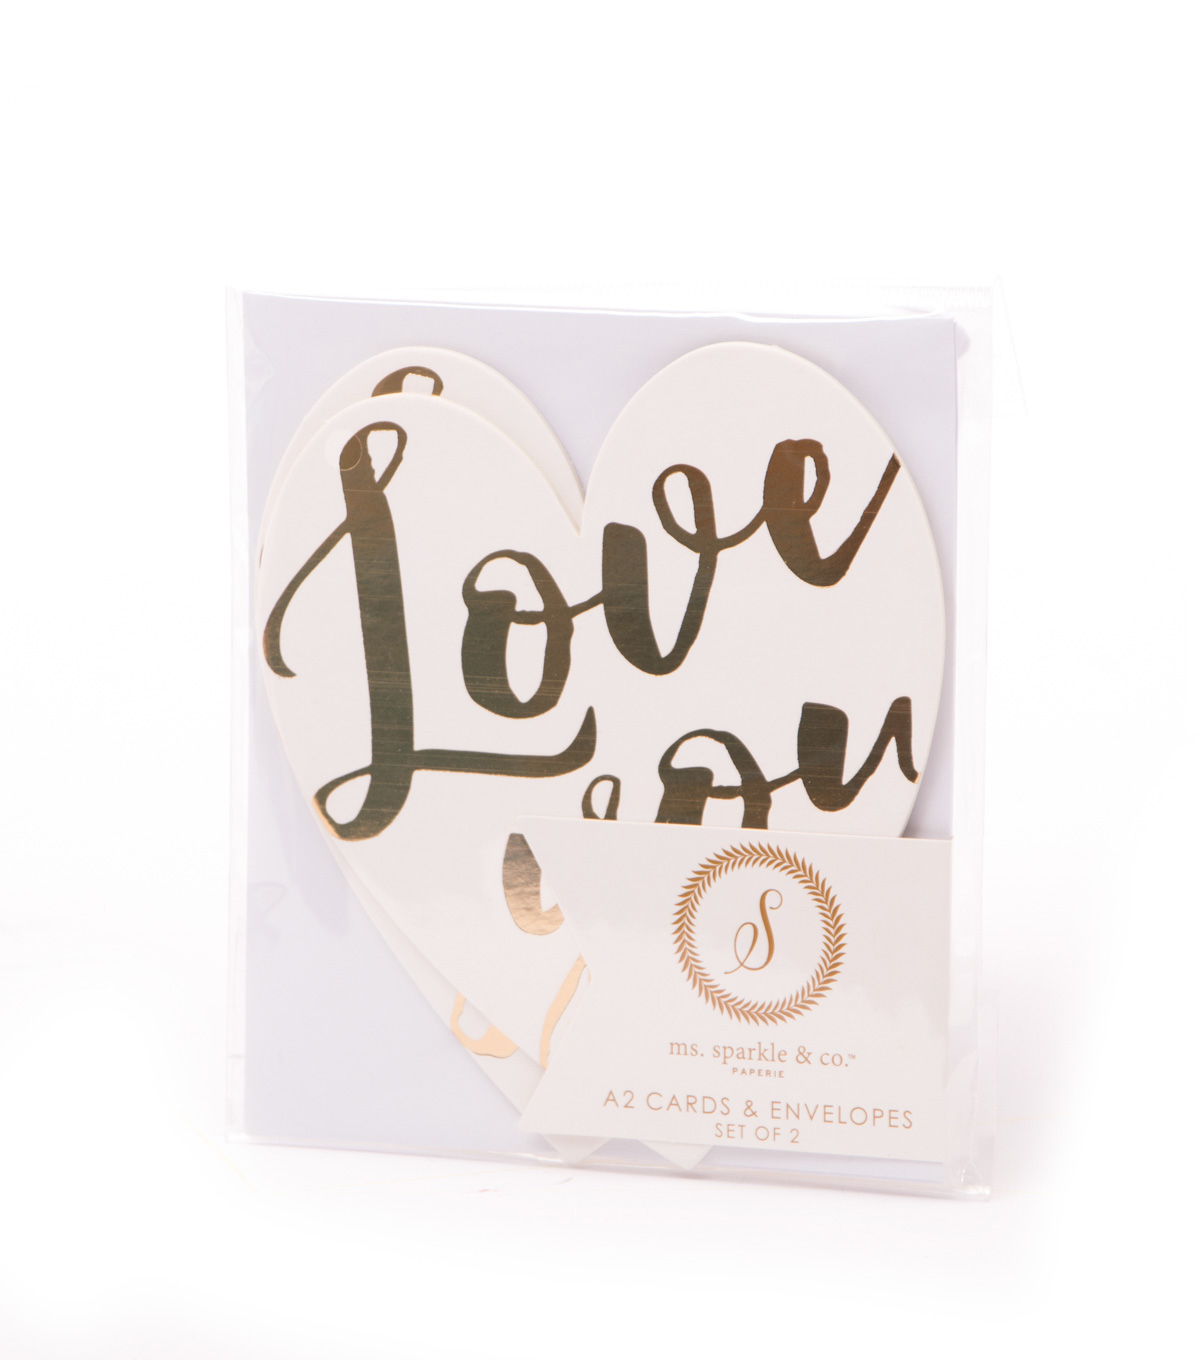 Ms. Sparkle & Co. Pack of 2 A2 Heart Shaped Cards-Love